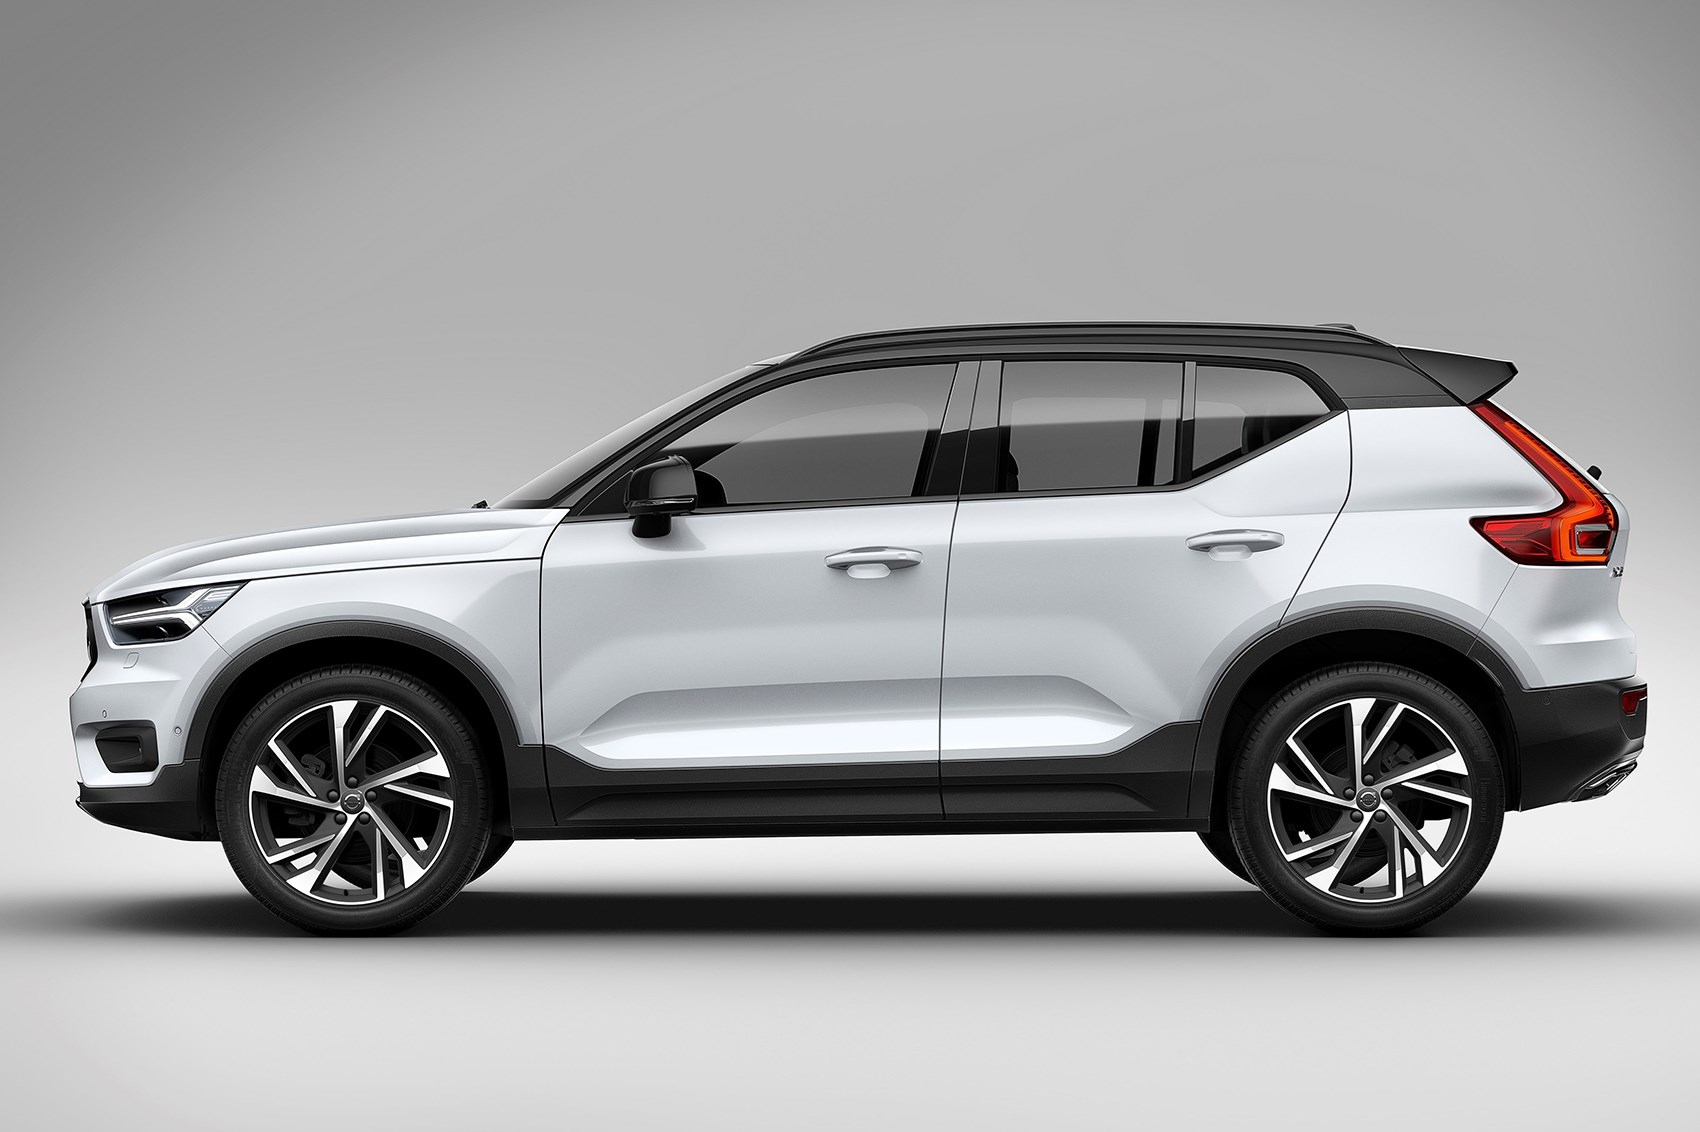 volvo xc40 volvo s baby suv all set to take indian roads gaadikey. Black Bedroom Furniture Sets. Home Design Ideas